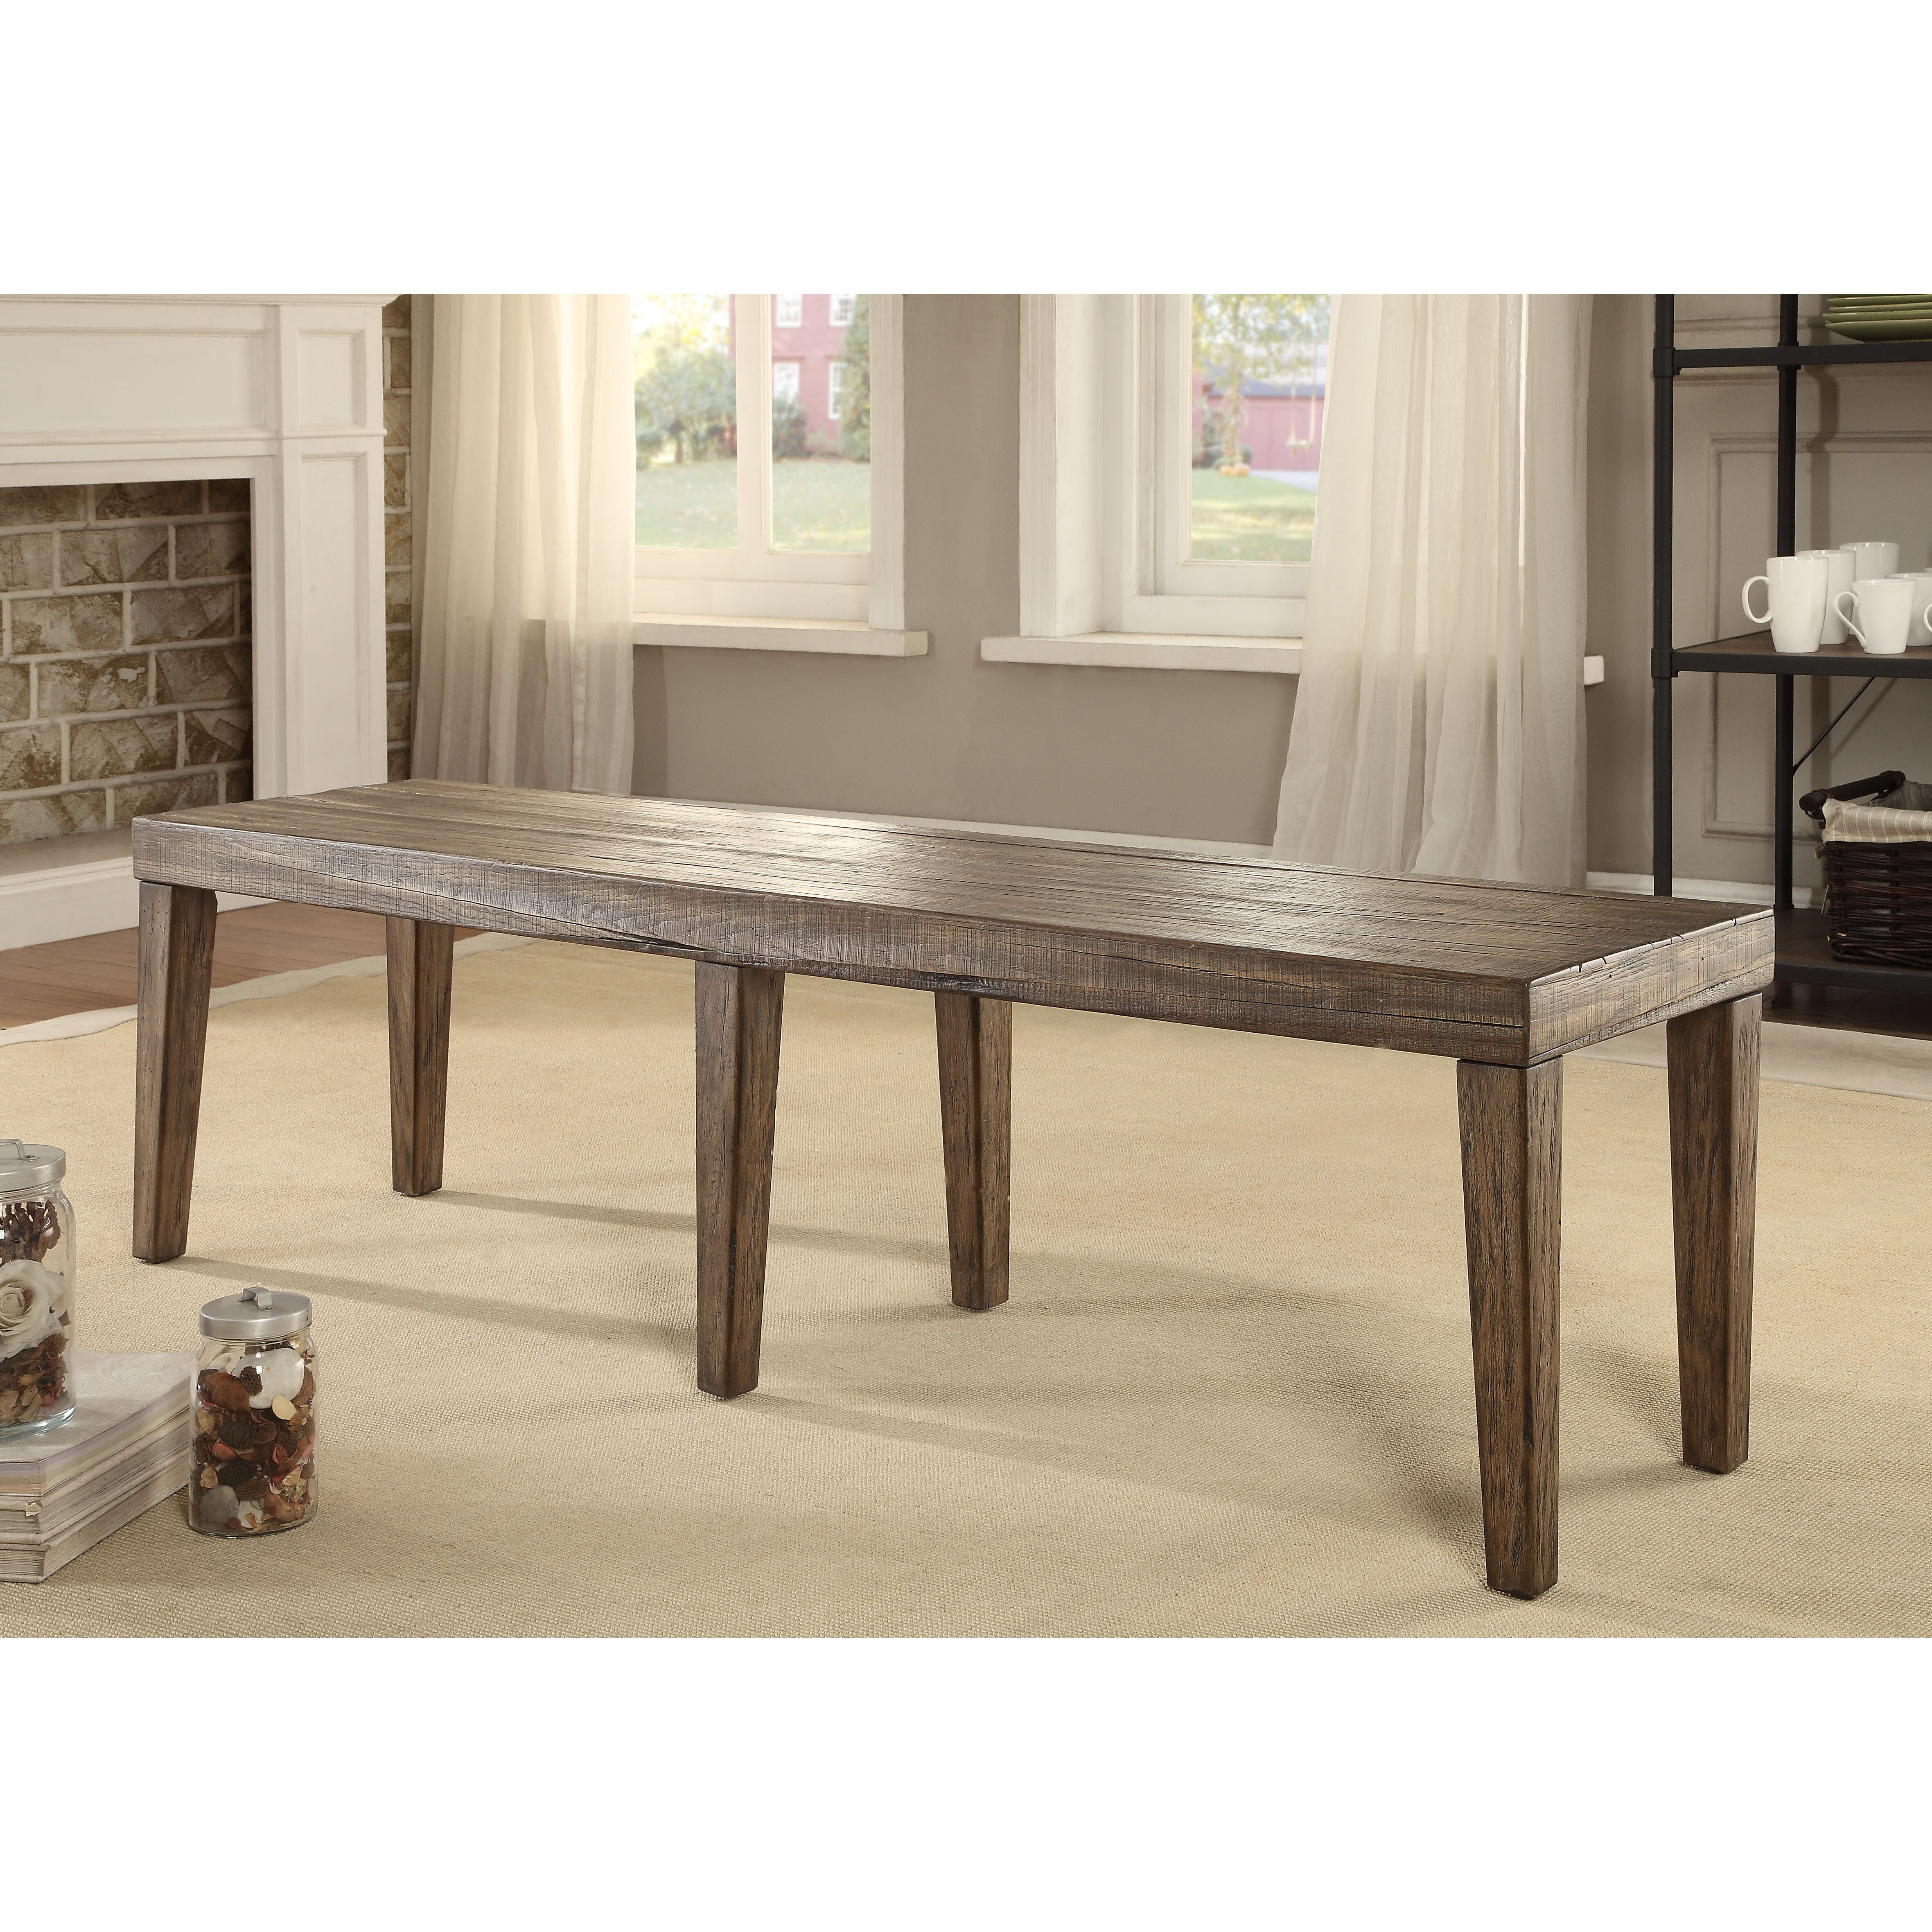 Grey Kitchen Bench: Canora Grey Shelby Wood Kitchen Bench & Reviews